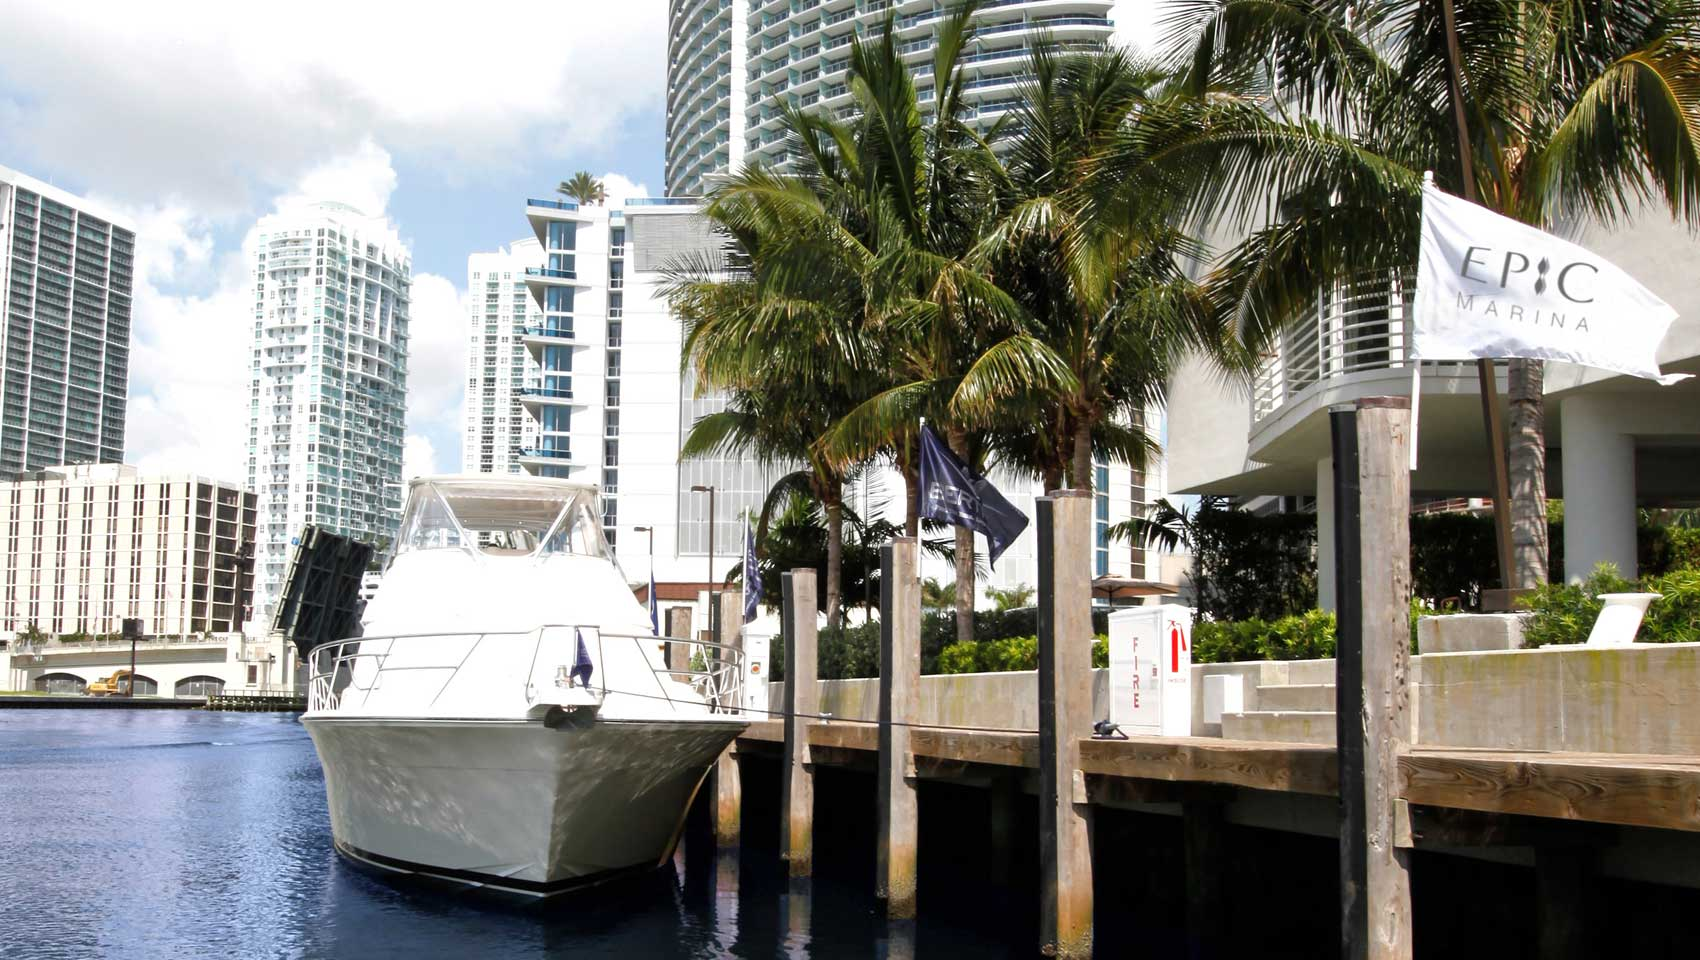 Miami Marina Hotels Kimpton Epic Hotel In Downtown Miami